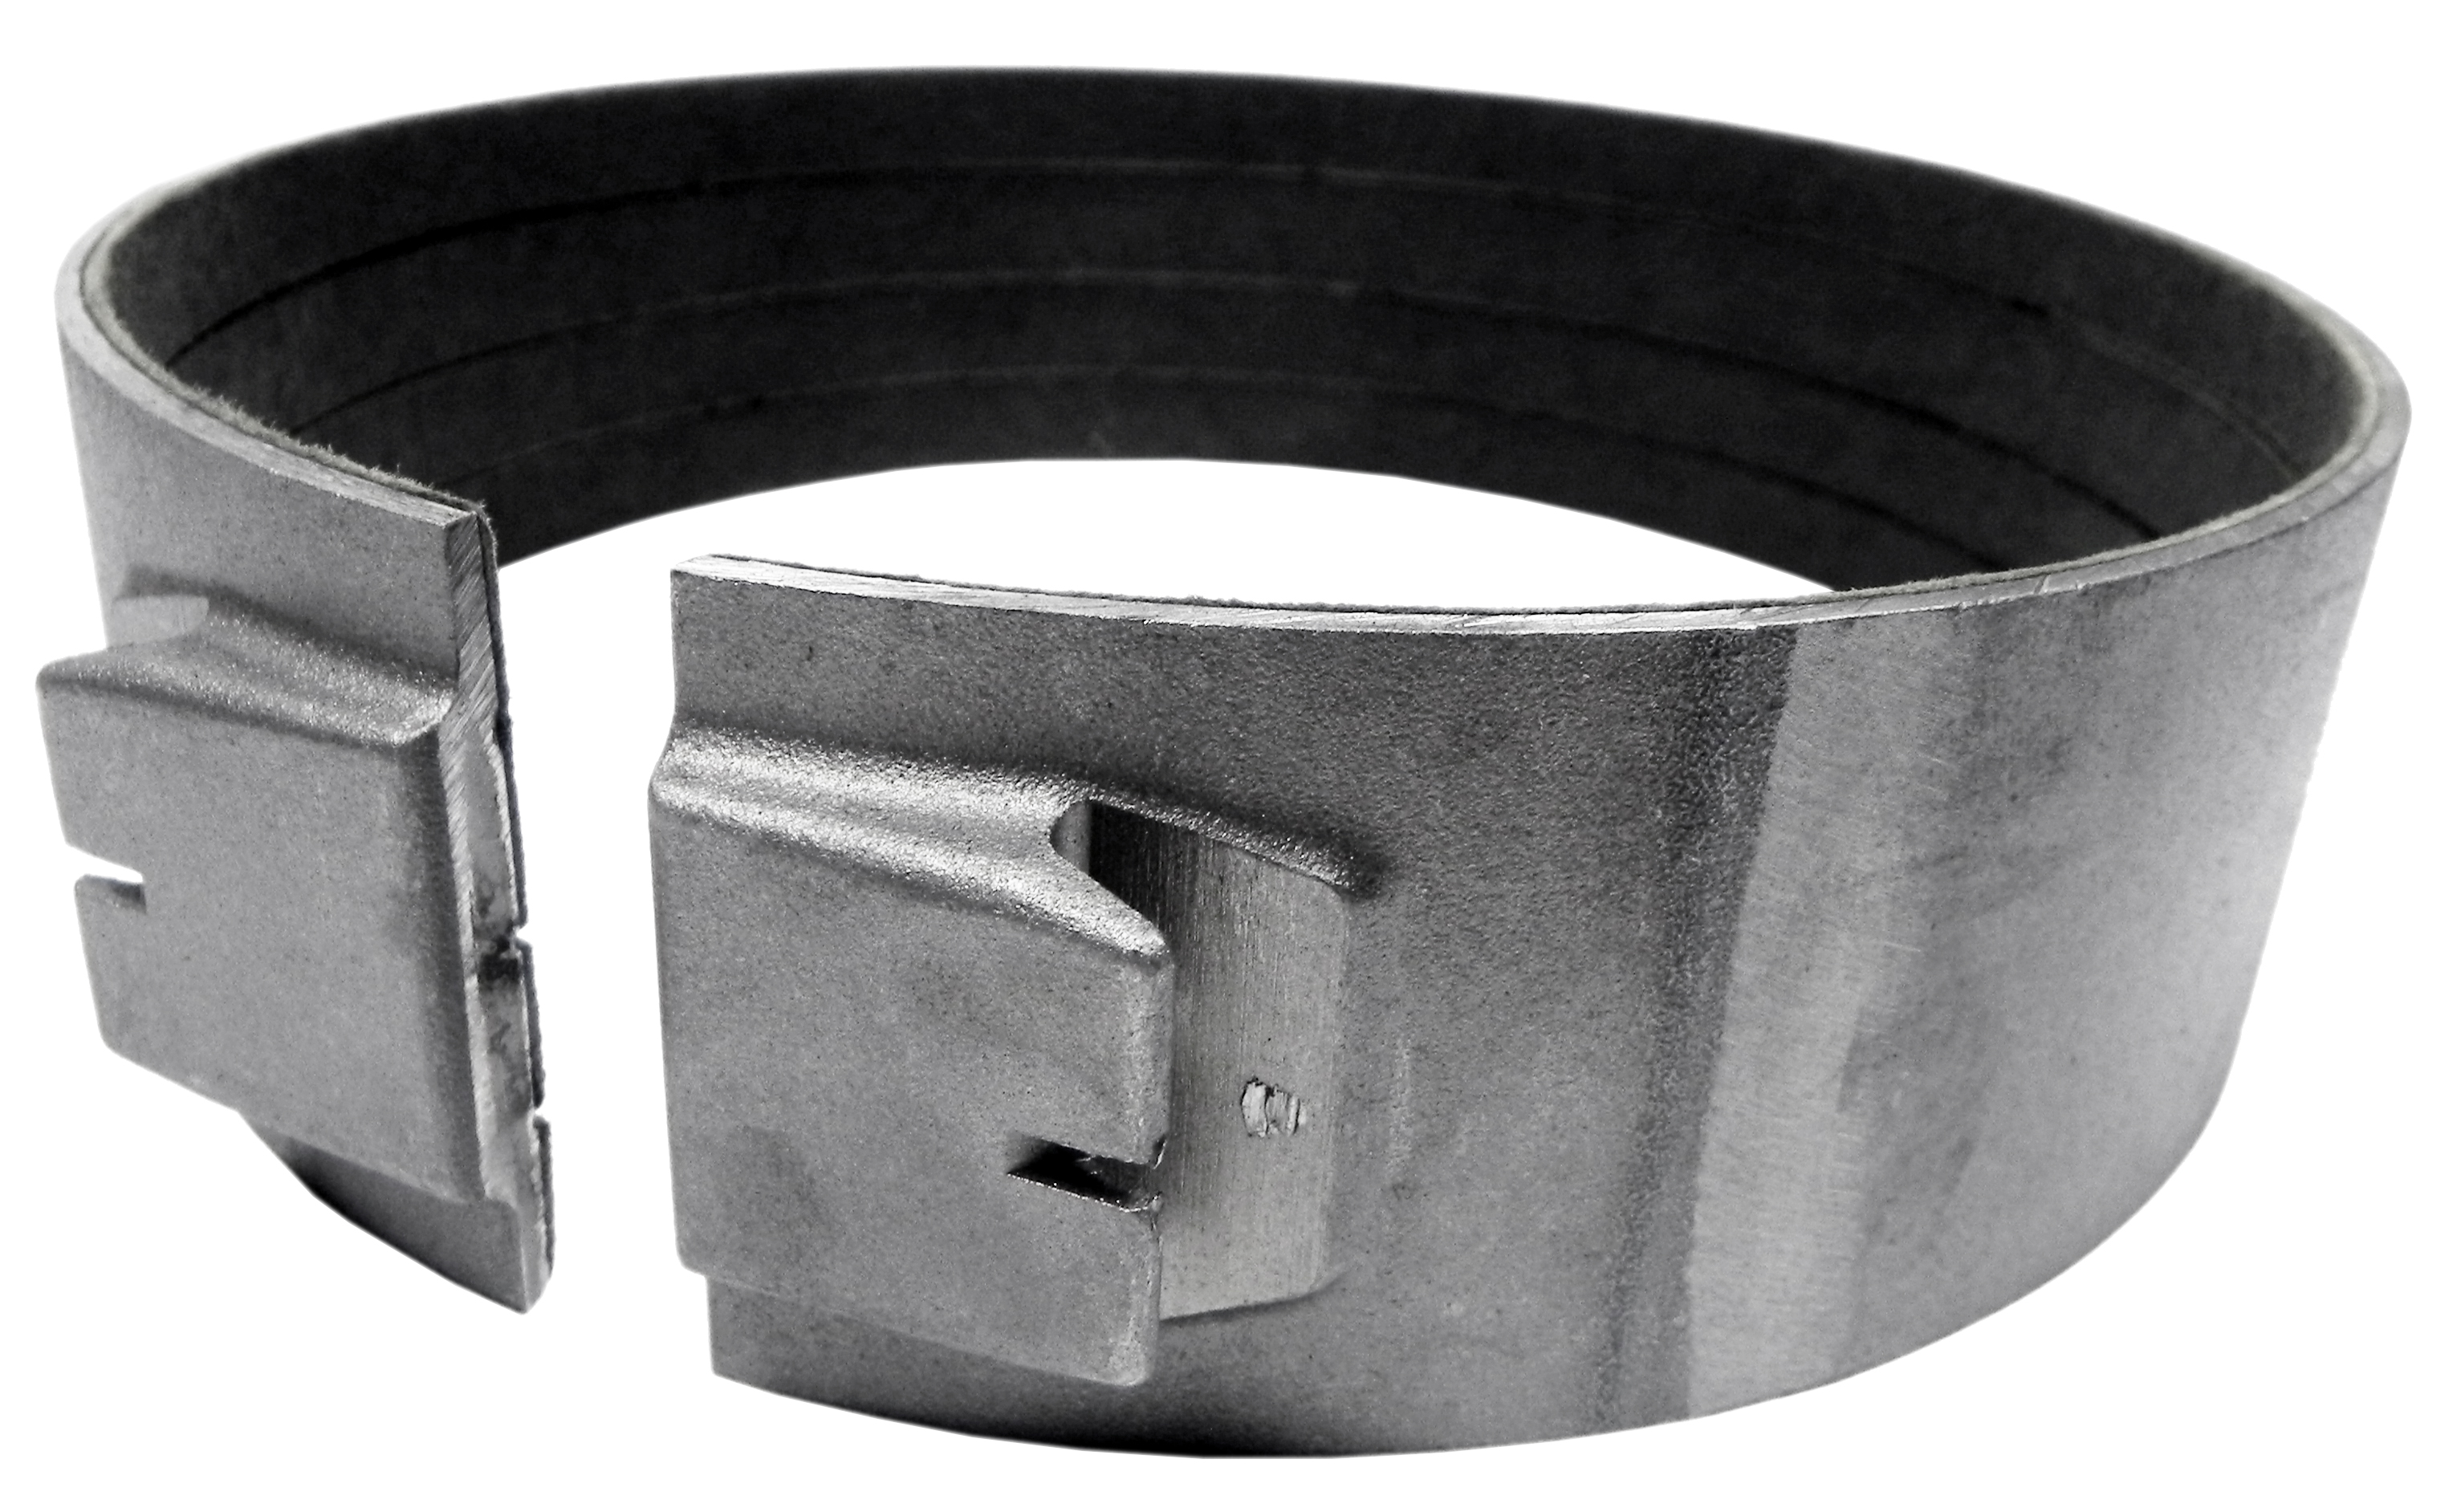 TF8, A727 (62-99) A518 / 46RH, A518ES / 46RE, A618 / 47RH, A618ES / 47RE, 48RE Intermediate (Wide) Pro-Series™  Transmission Band